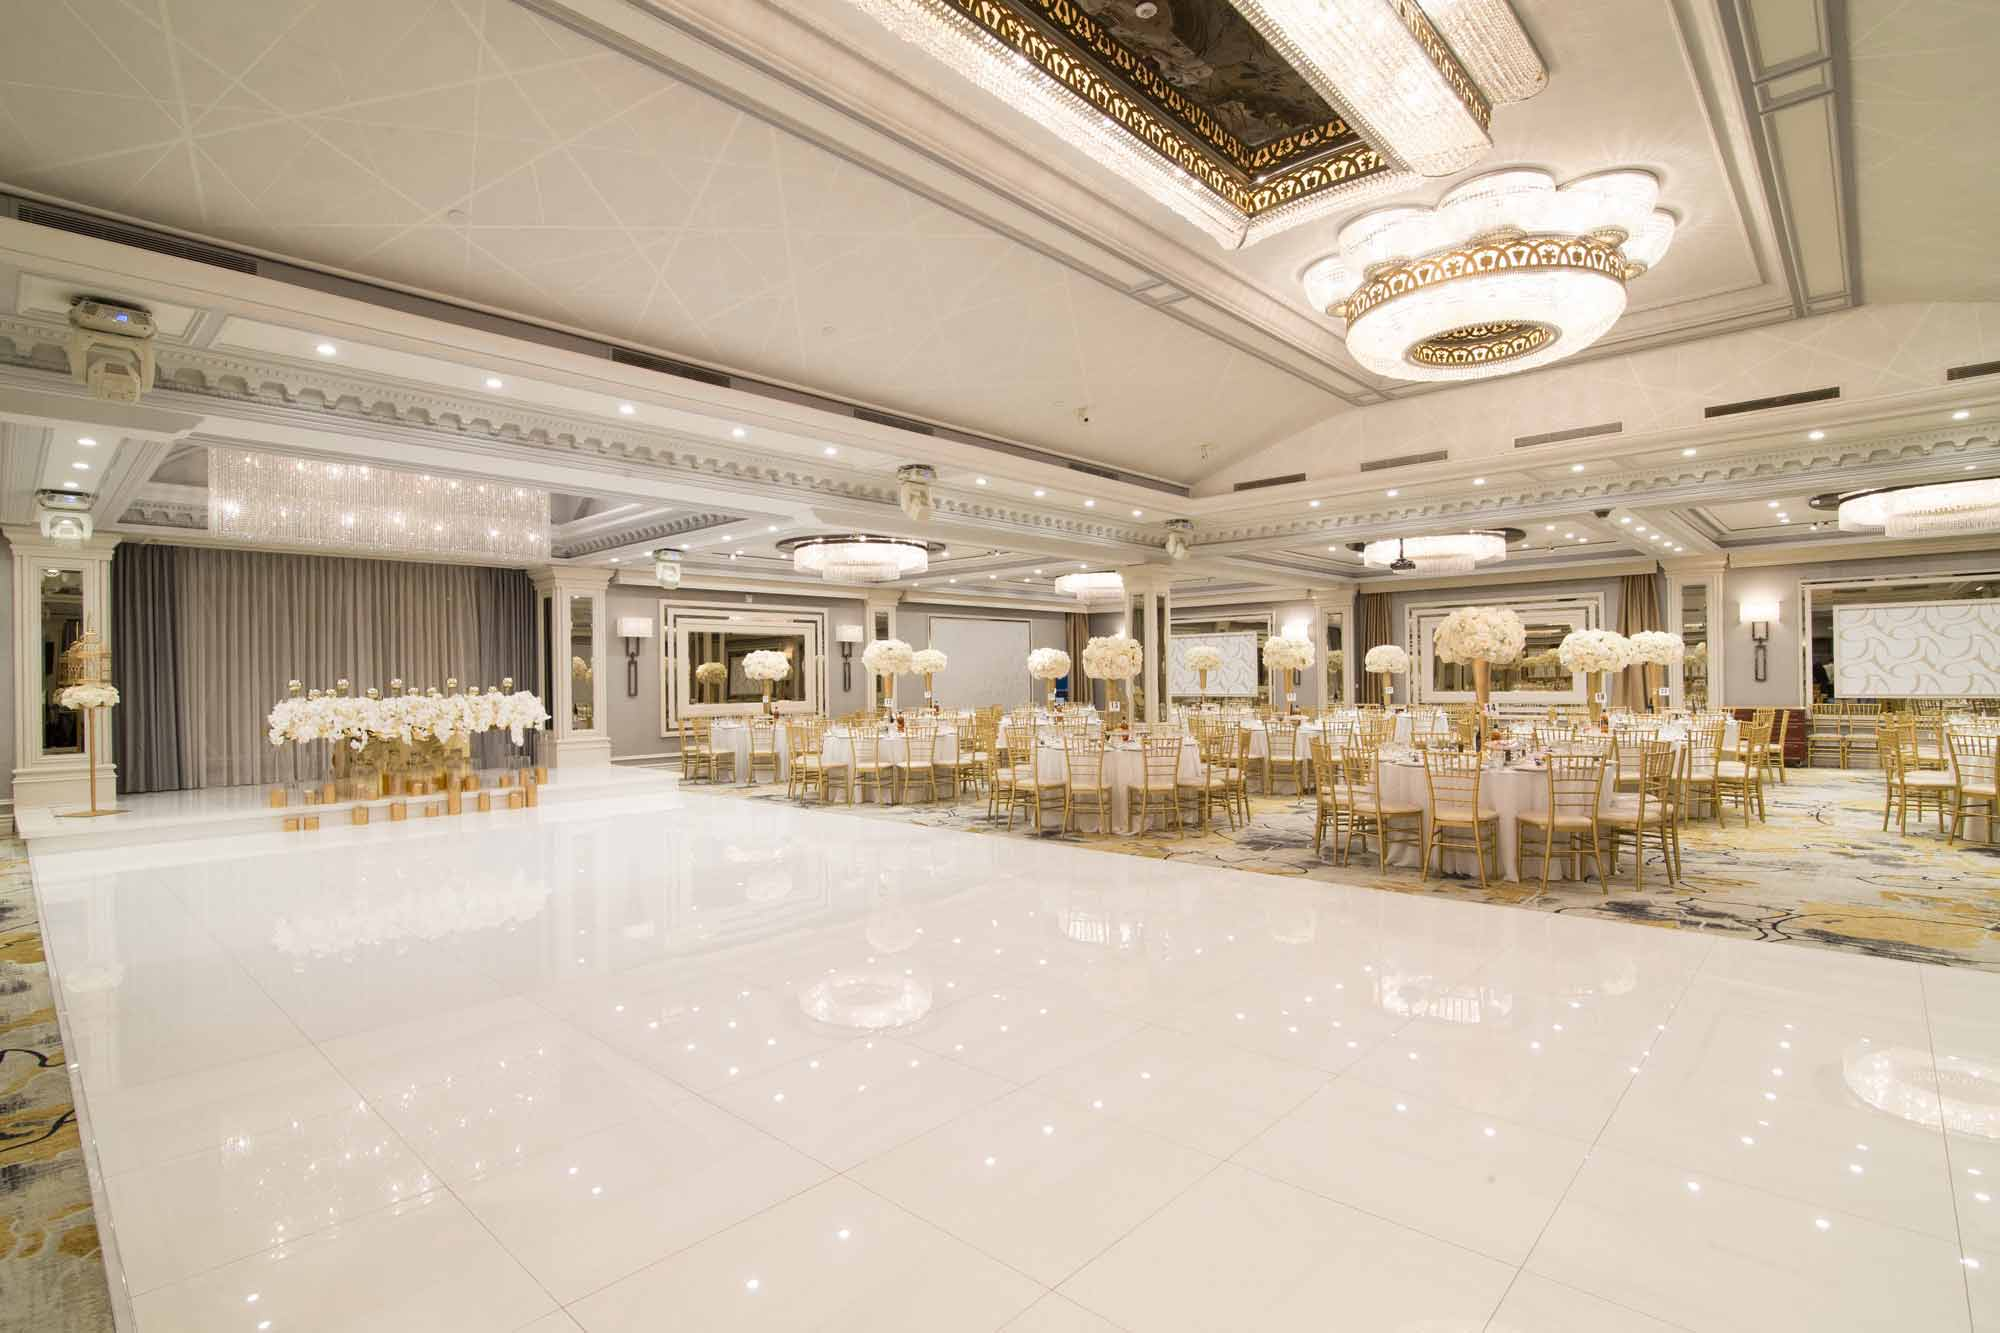 Modern Banquet Hall in Glendale CA with White Dance Floor